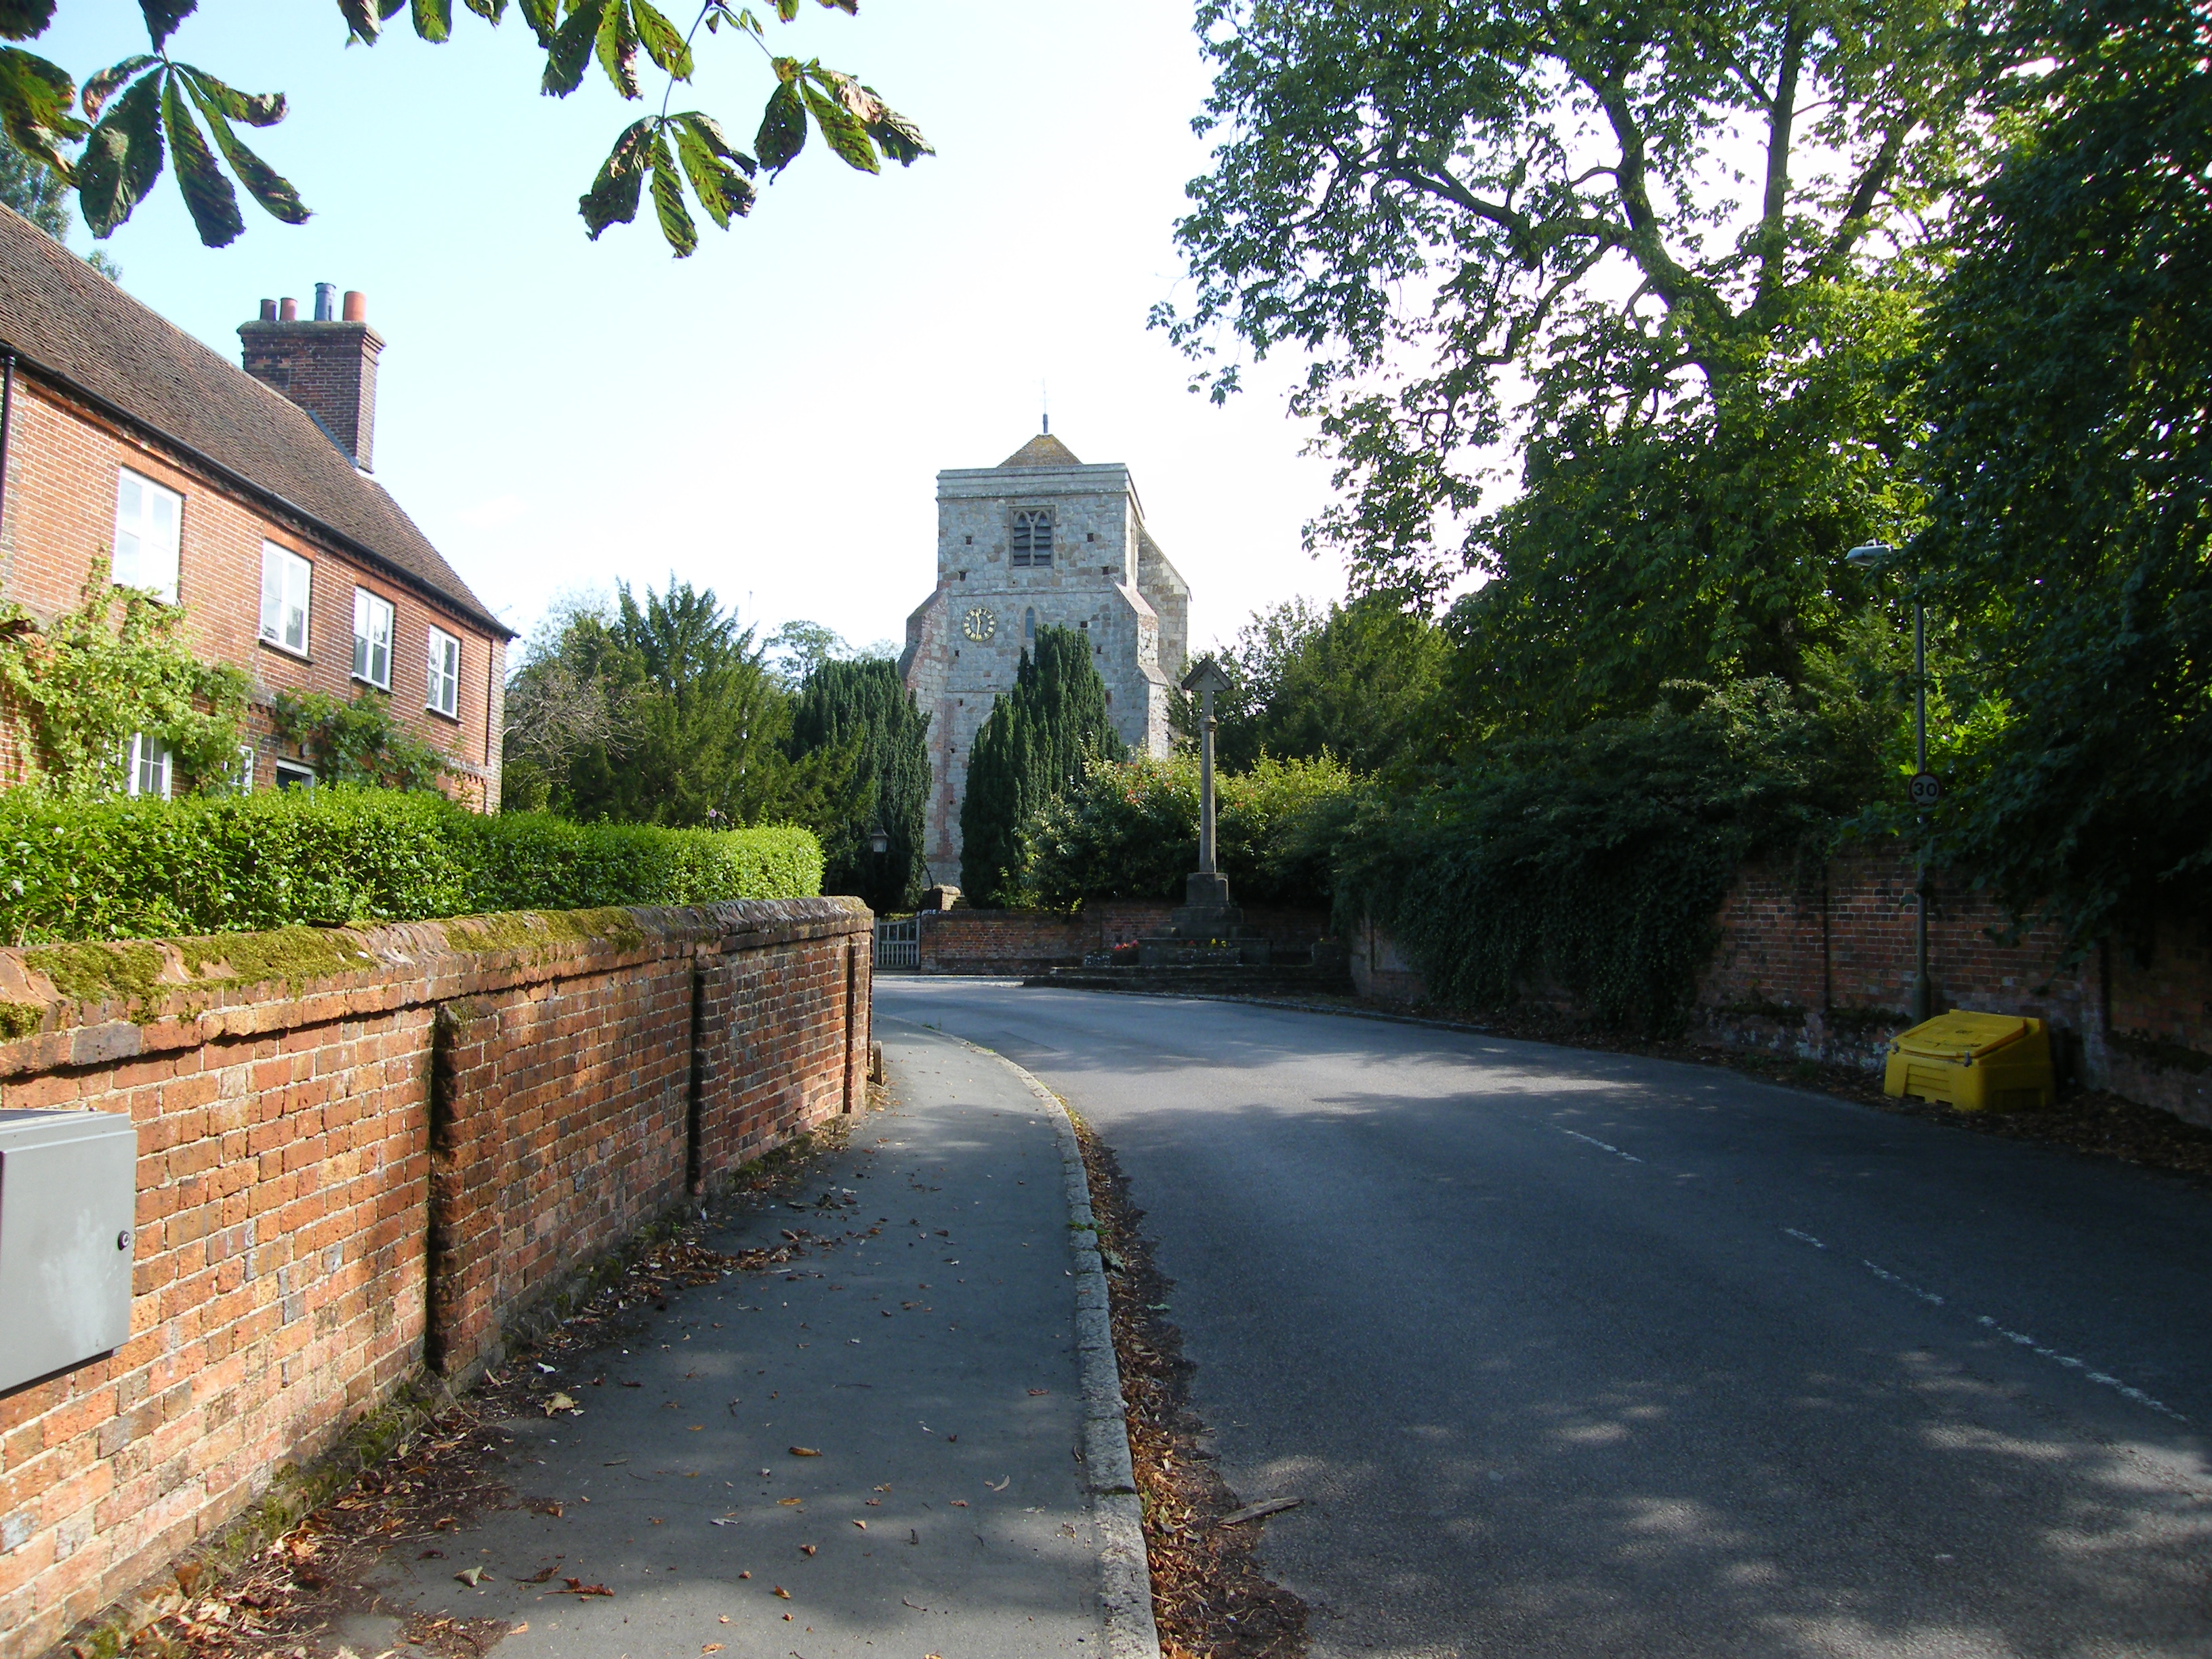 Puttenham Church from The Street